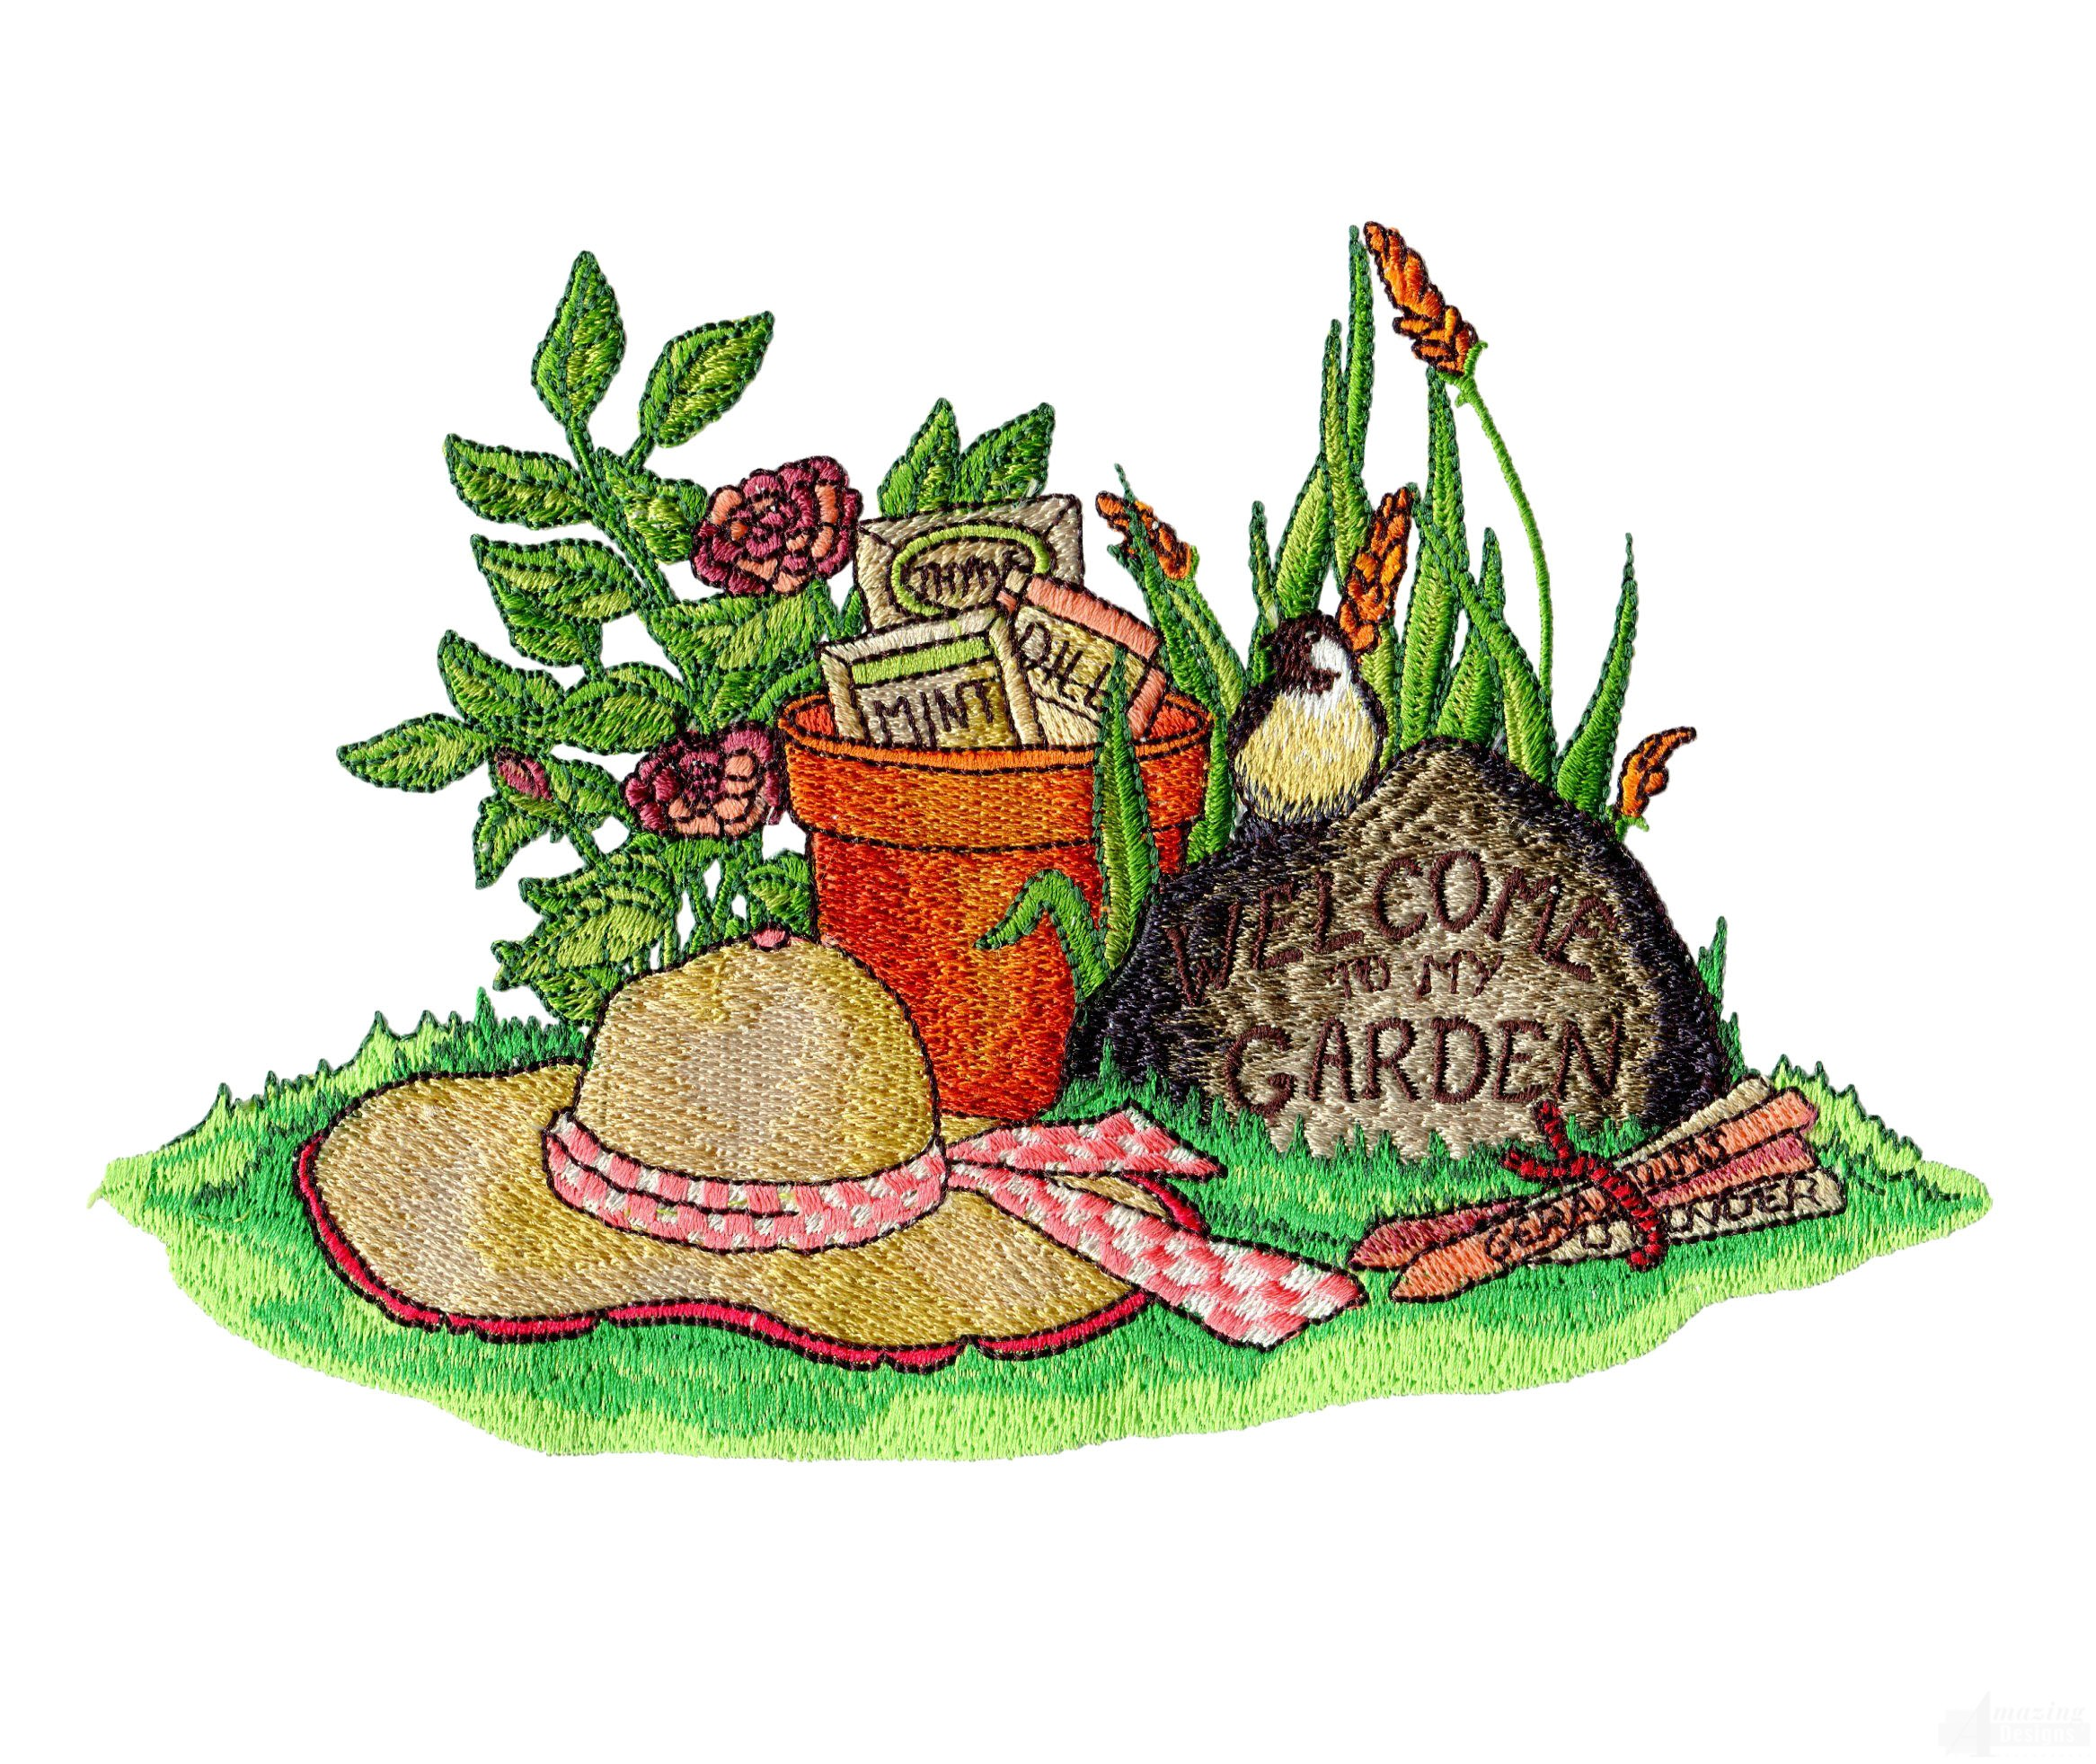 welcome to my garden embroidery design ForGarden Embroidery Designs Free